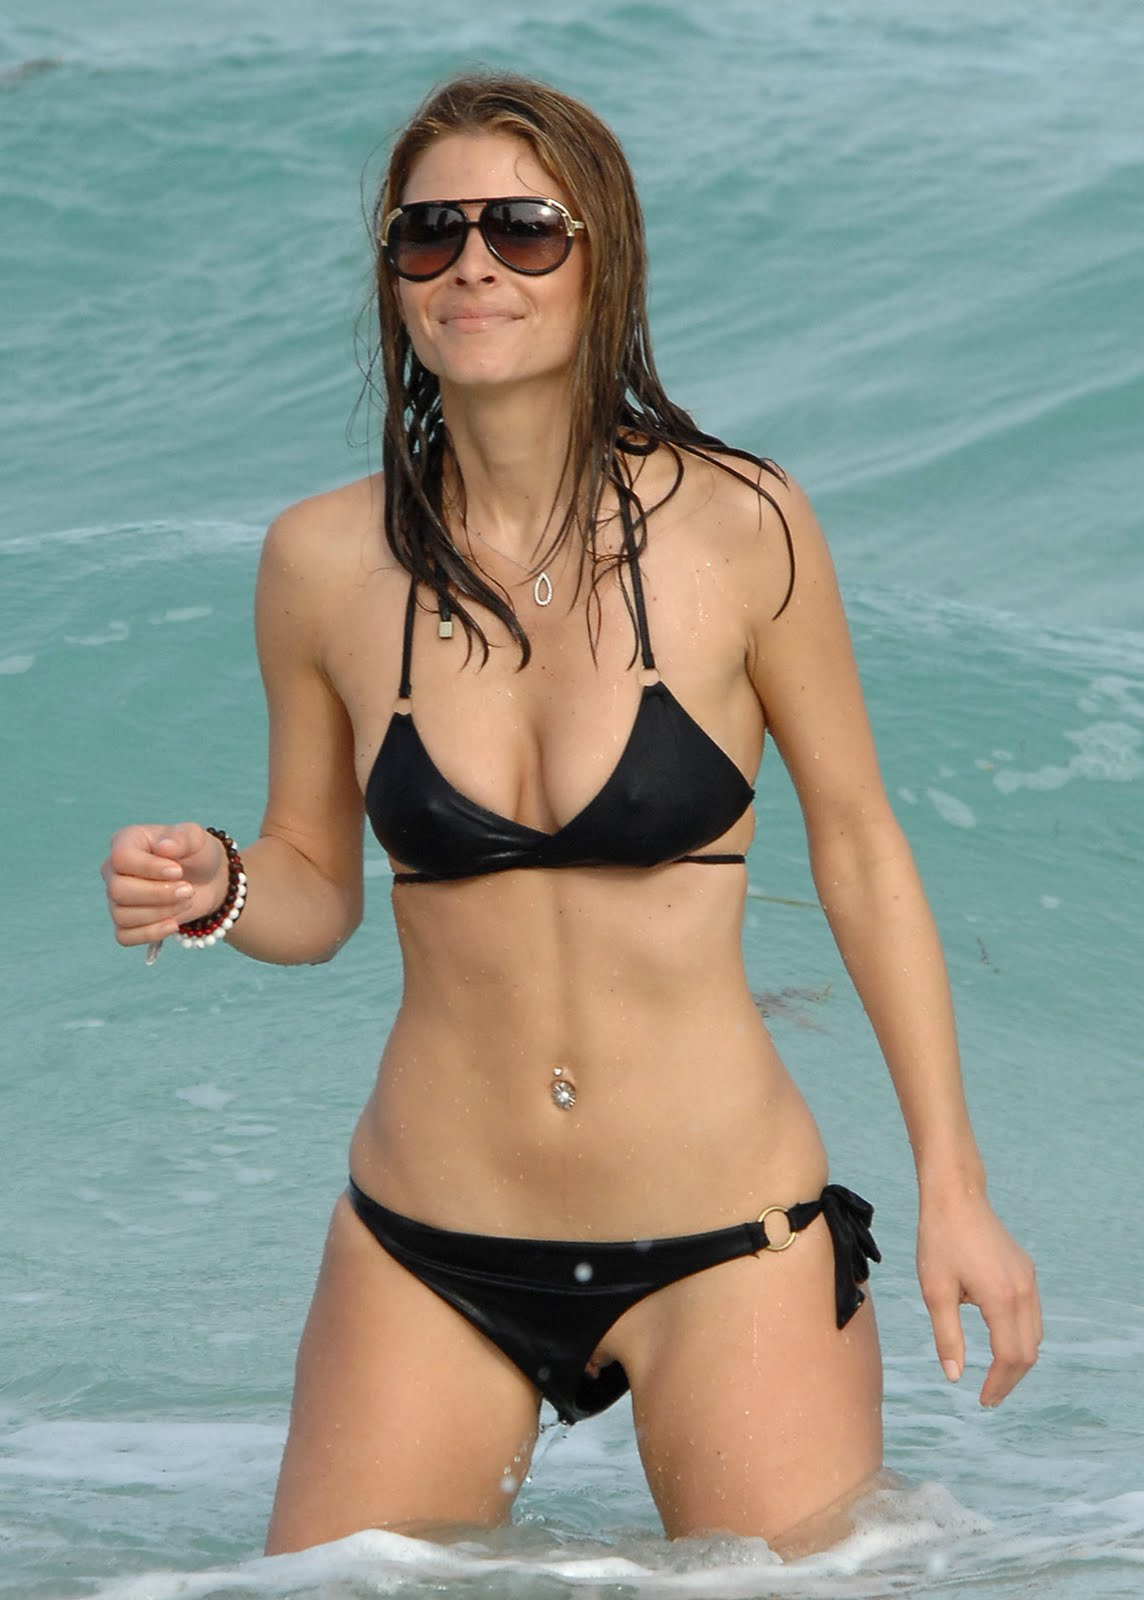 Maria Menounos Bikini miley cyrus playboy exposed photos  : Maria Menounos Bikini 7 from mileycyrusplayboyexposedphotosvolumes.typepad.com size 1144 x 1600 jpeg 128kB